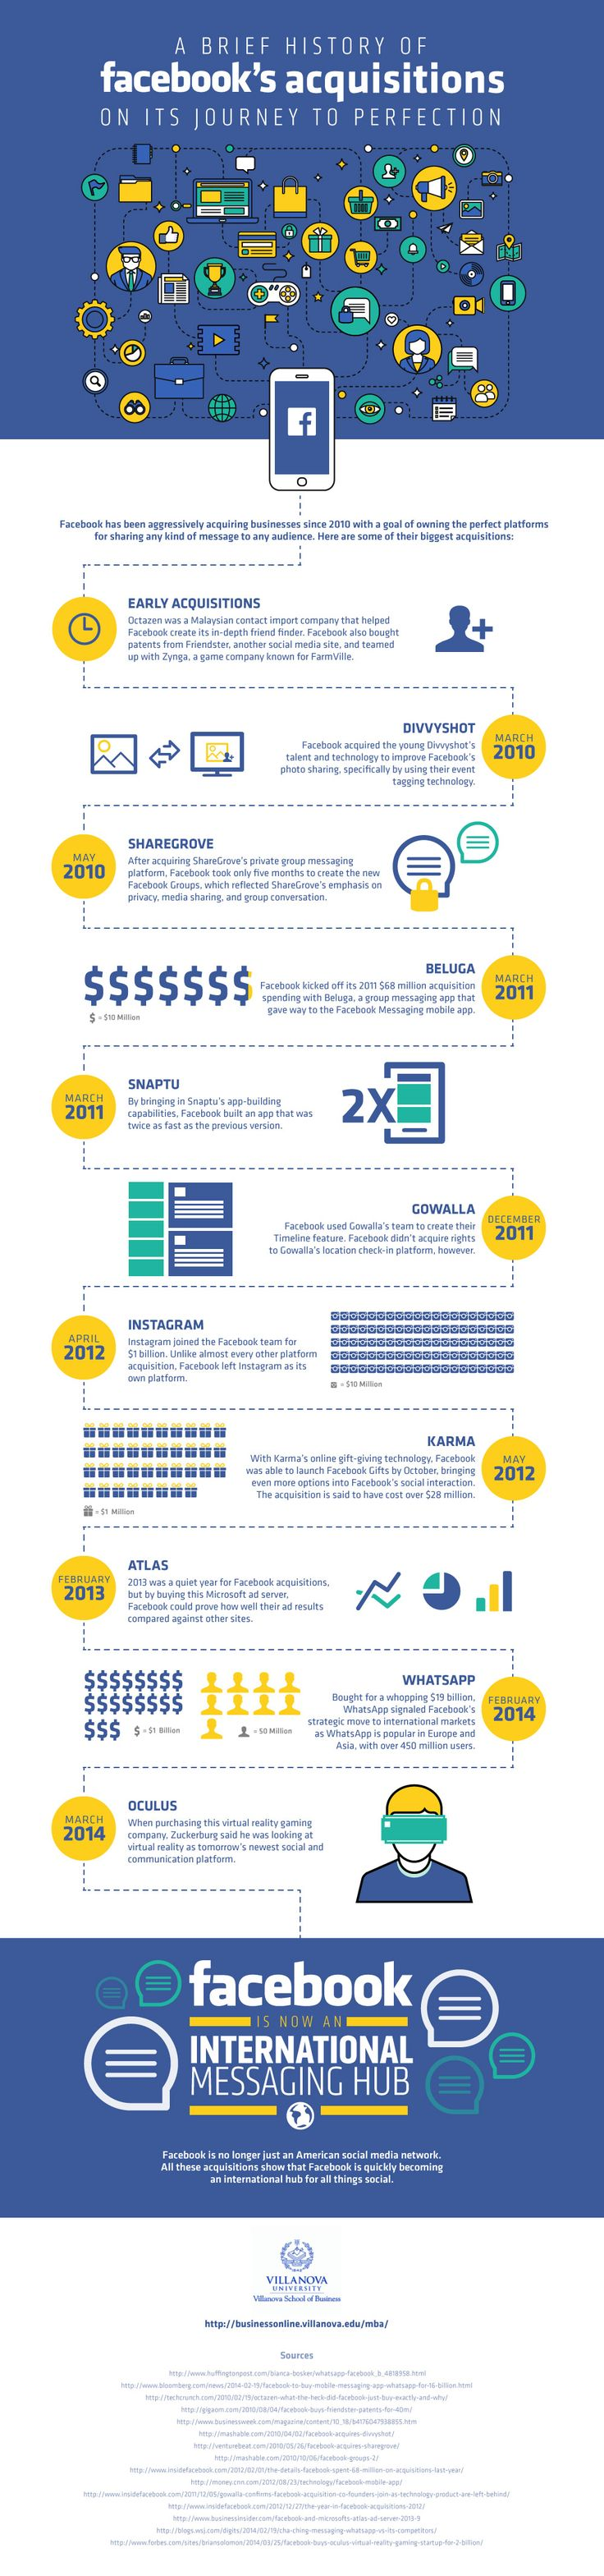 Facebook's Acquisitions on its Journey to Perfection #Infographic #Facebook #SocialMedia